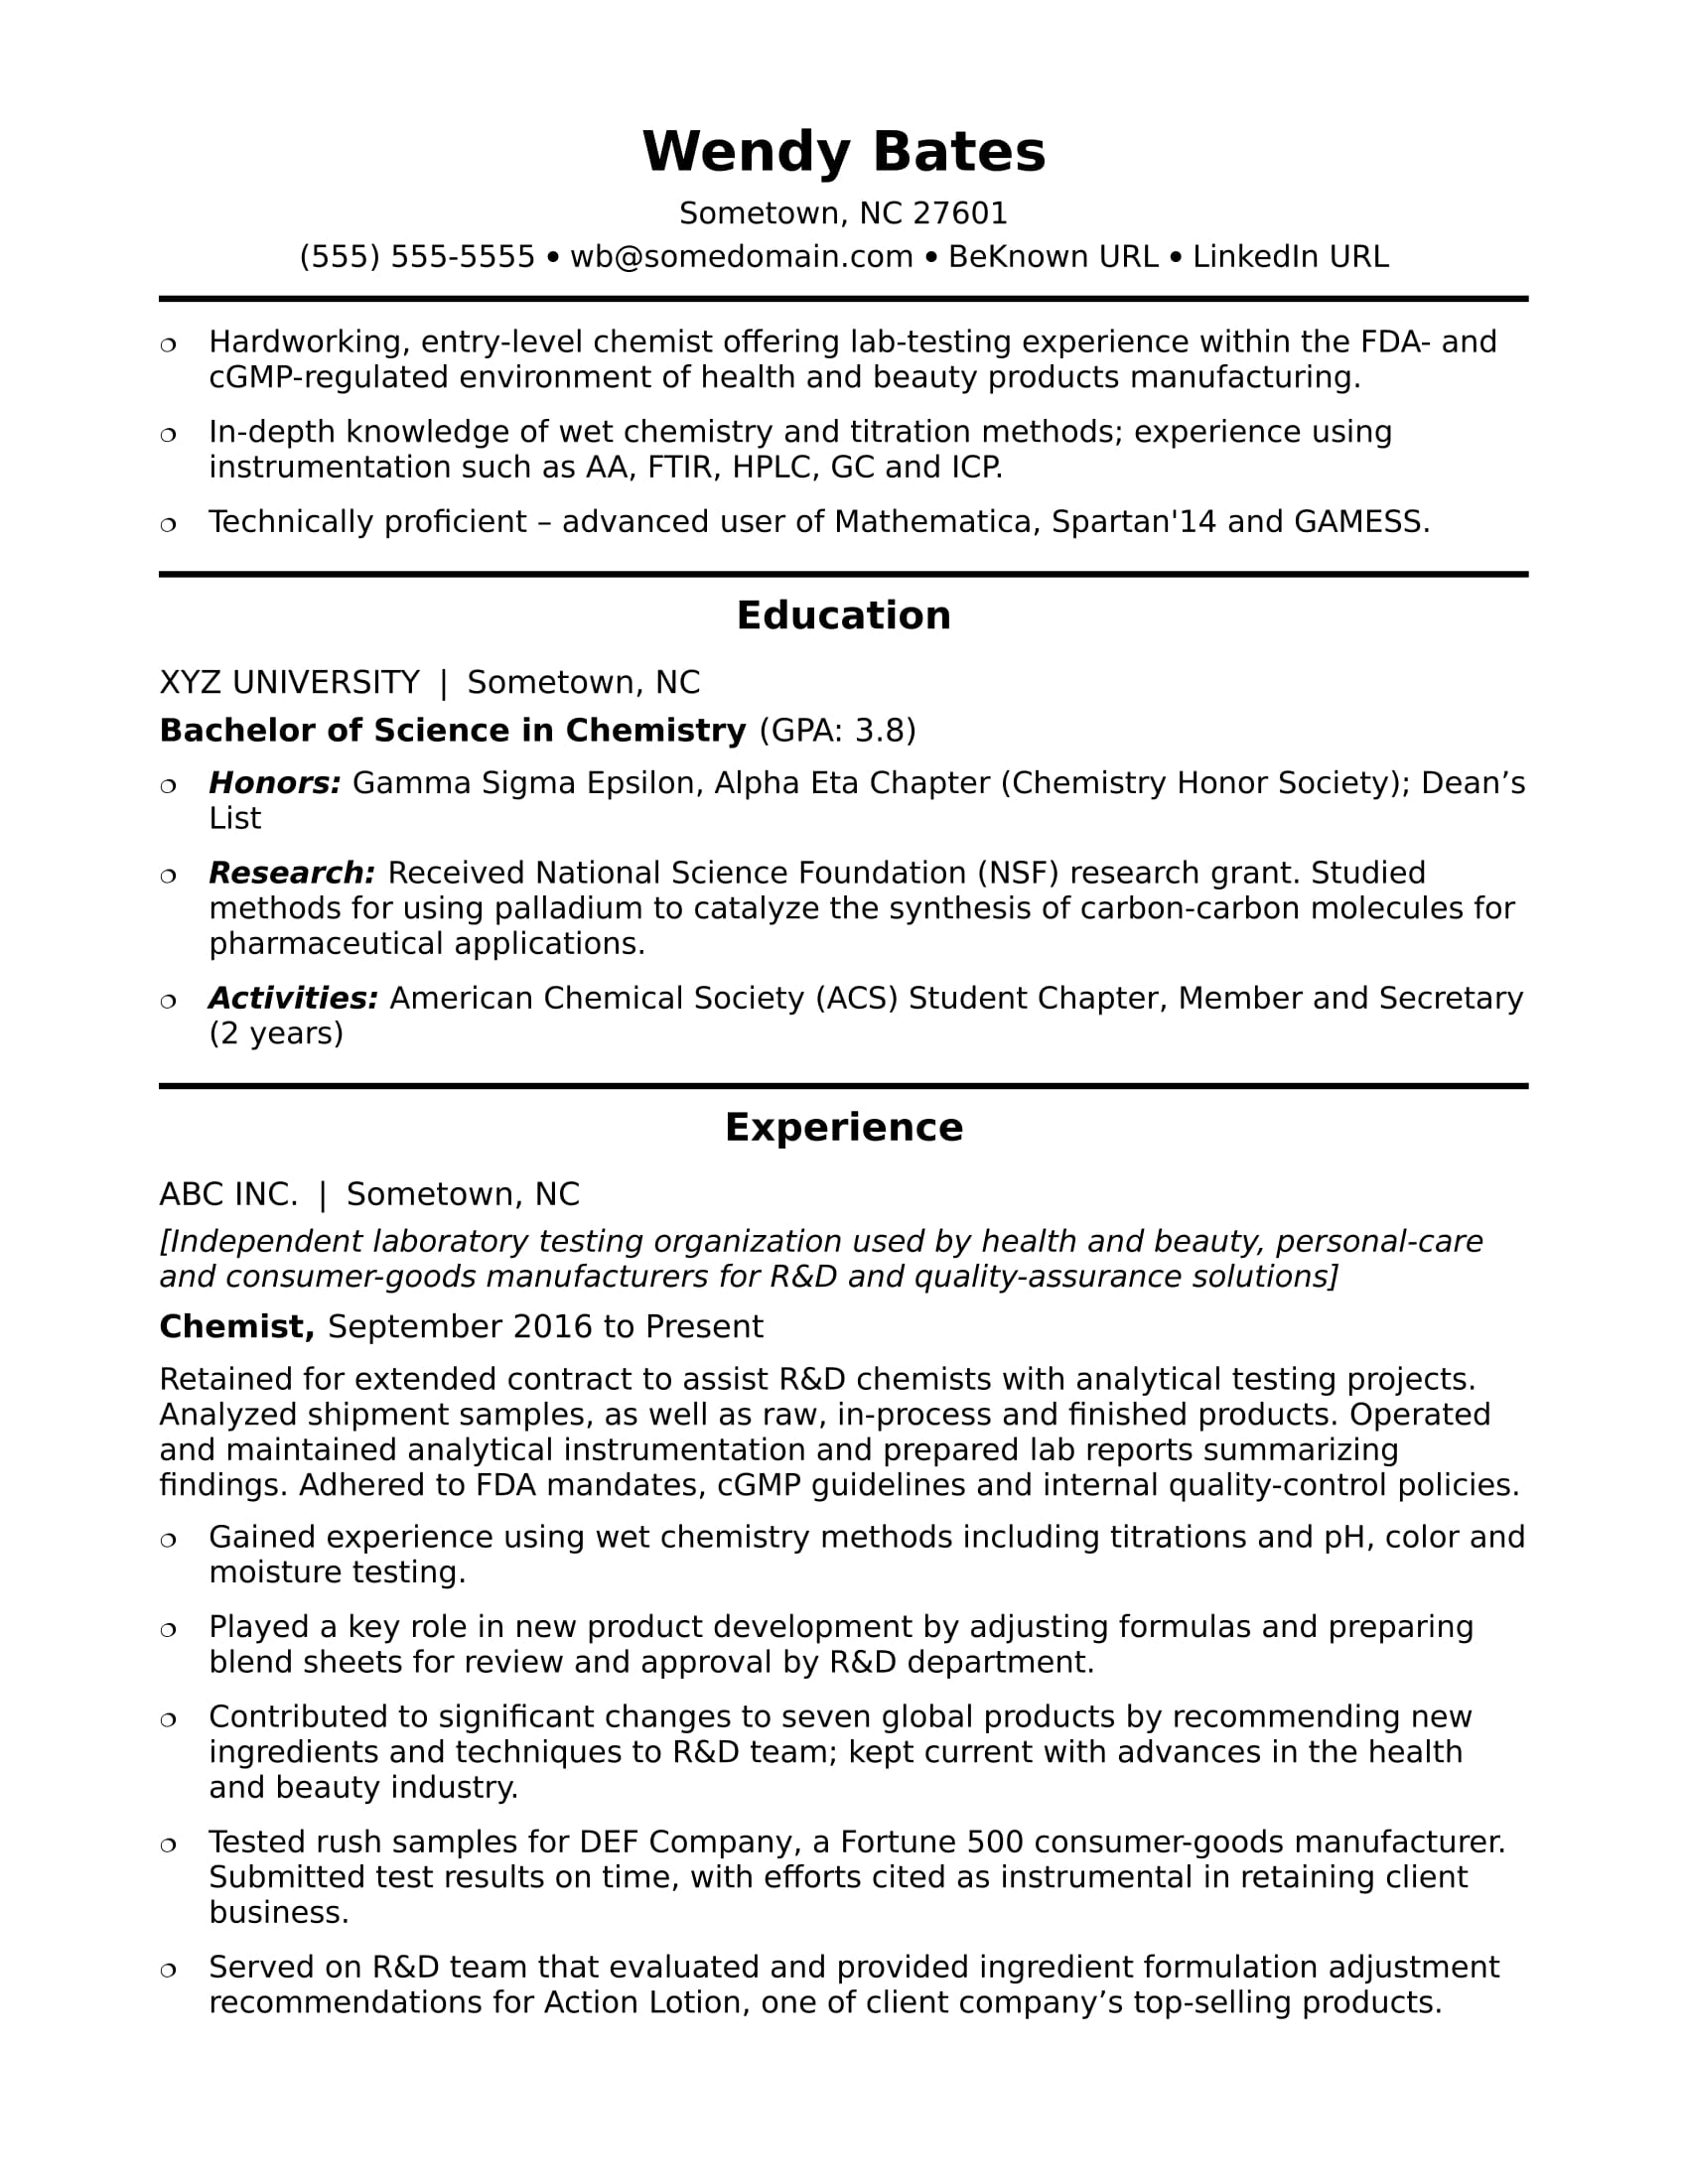 Hairdressing Resume Sample Australia Entry Level Chemist Resume Sample Monster